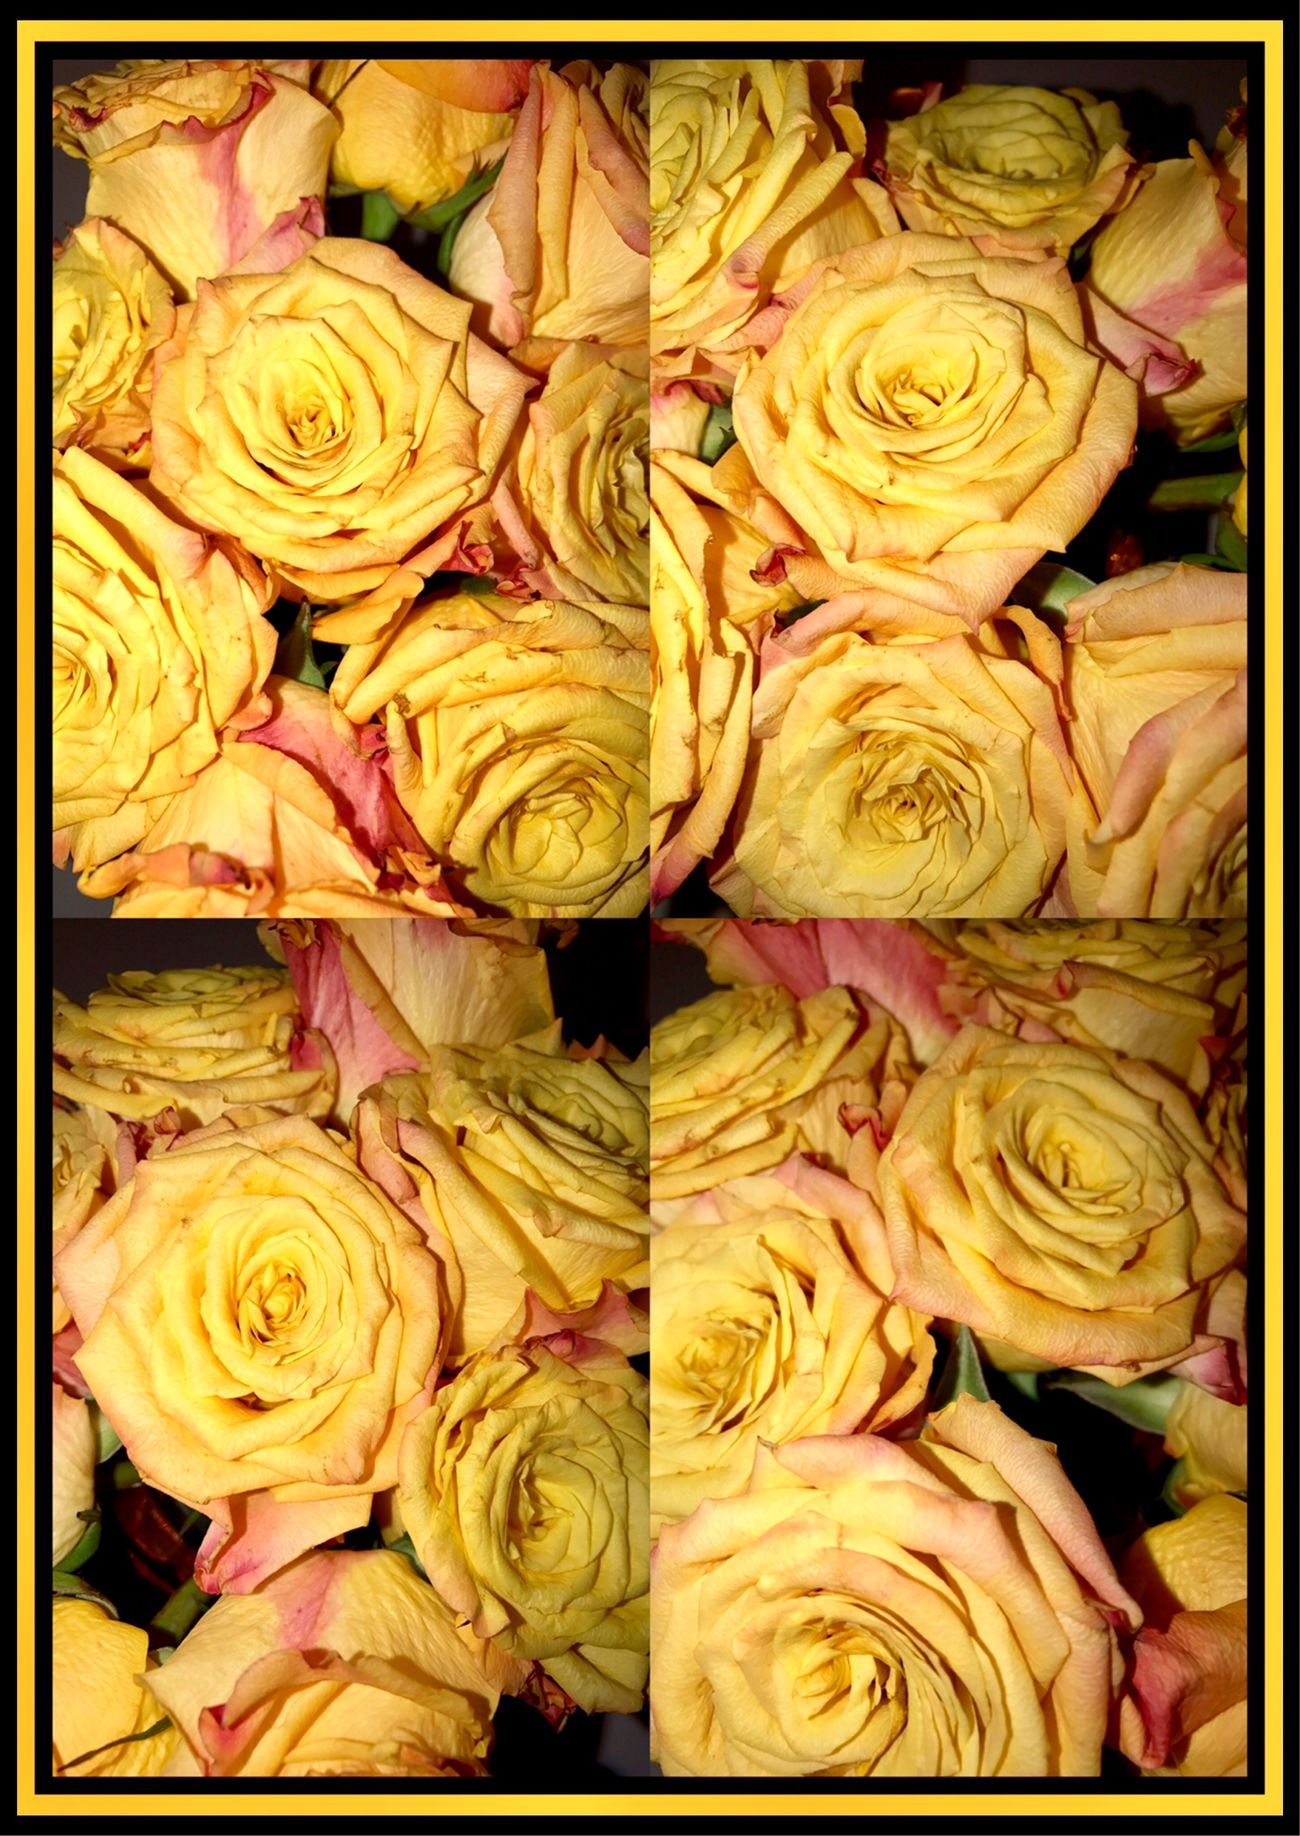 Roses 🌹🍃🌹 Roses Orange Rose Bouquet Gift Flowers_collection Flowers Of EyeEm Flower Photography Flowercollage 🌹🍃🌹